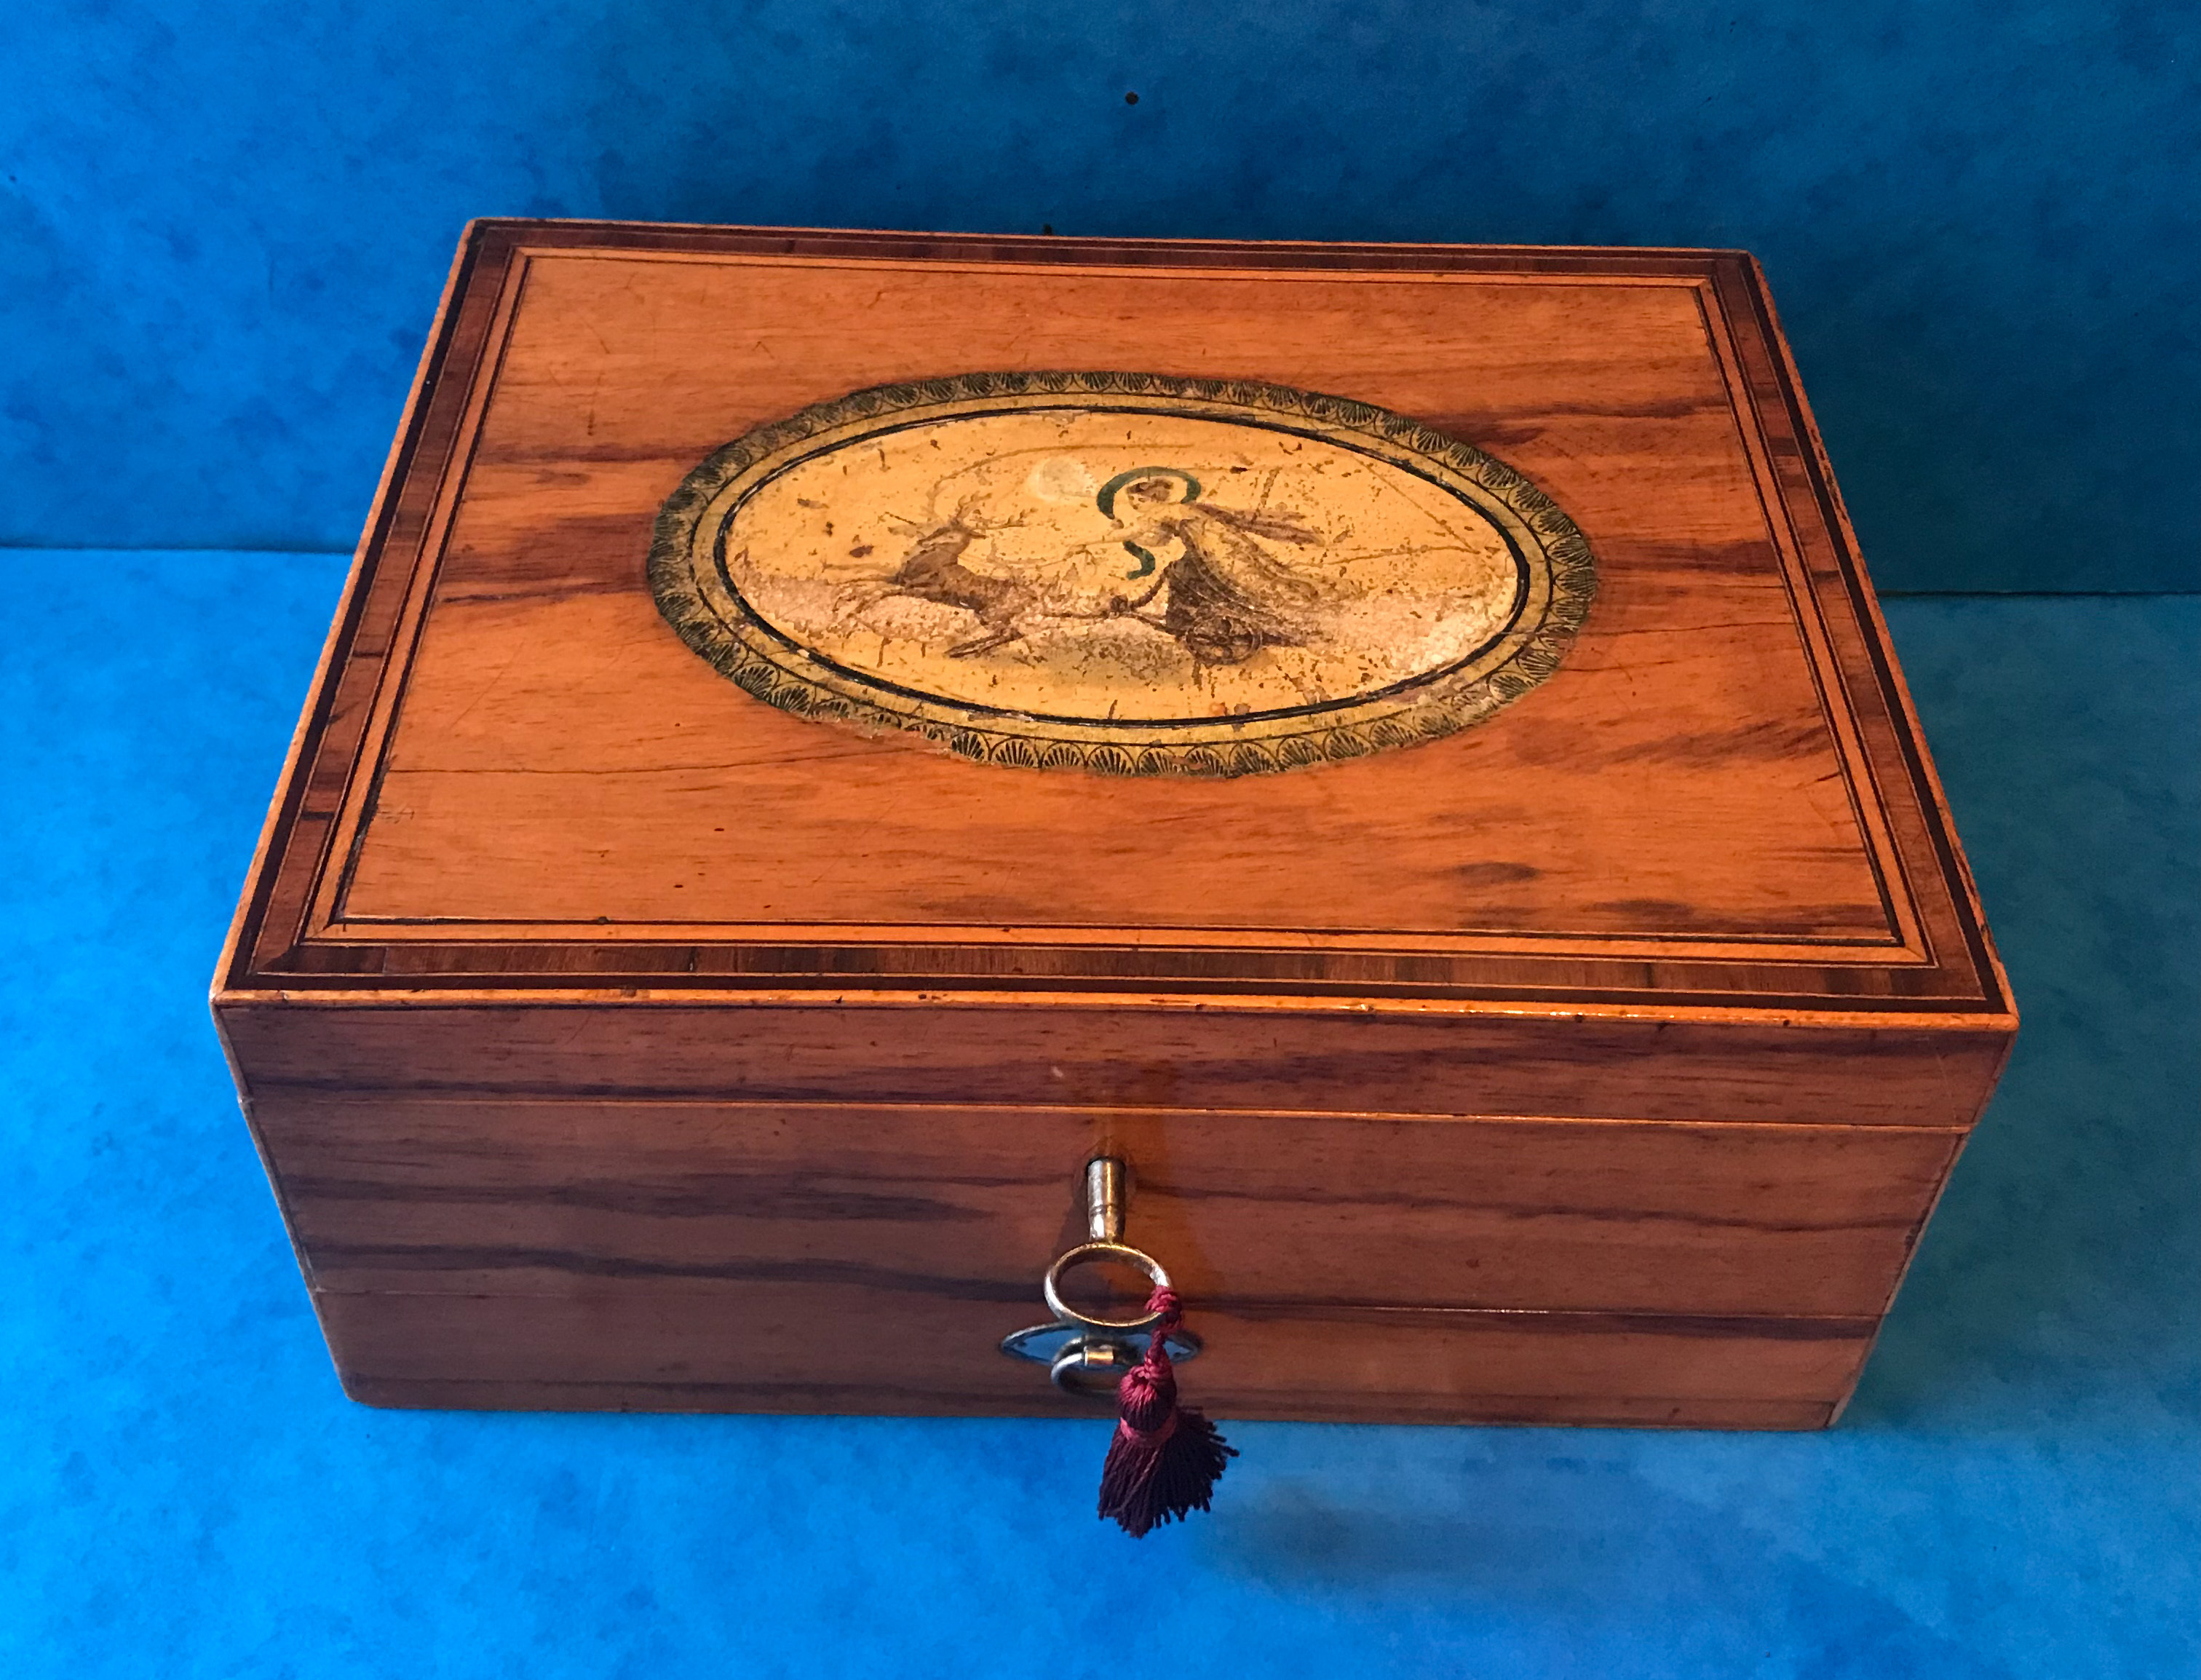 Regency Period Sewing Box